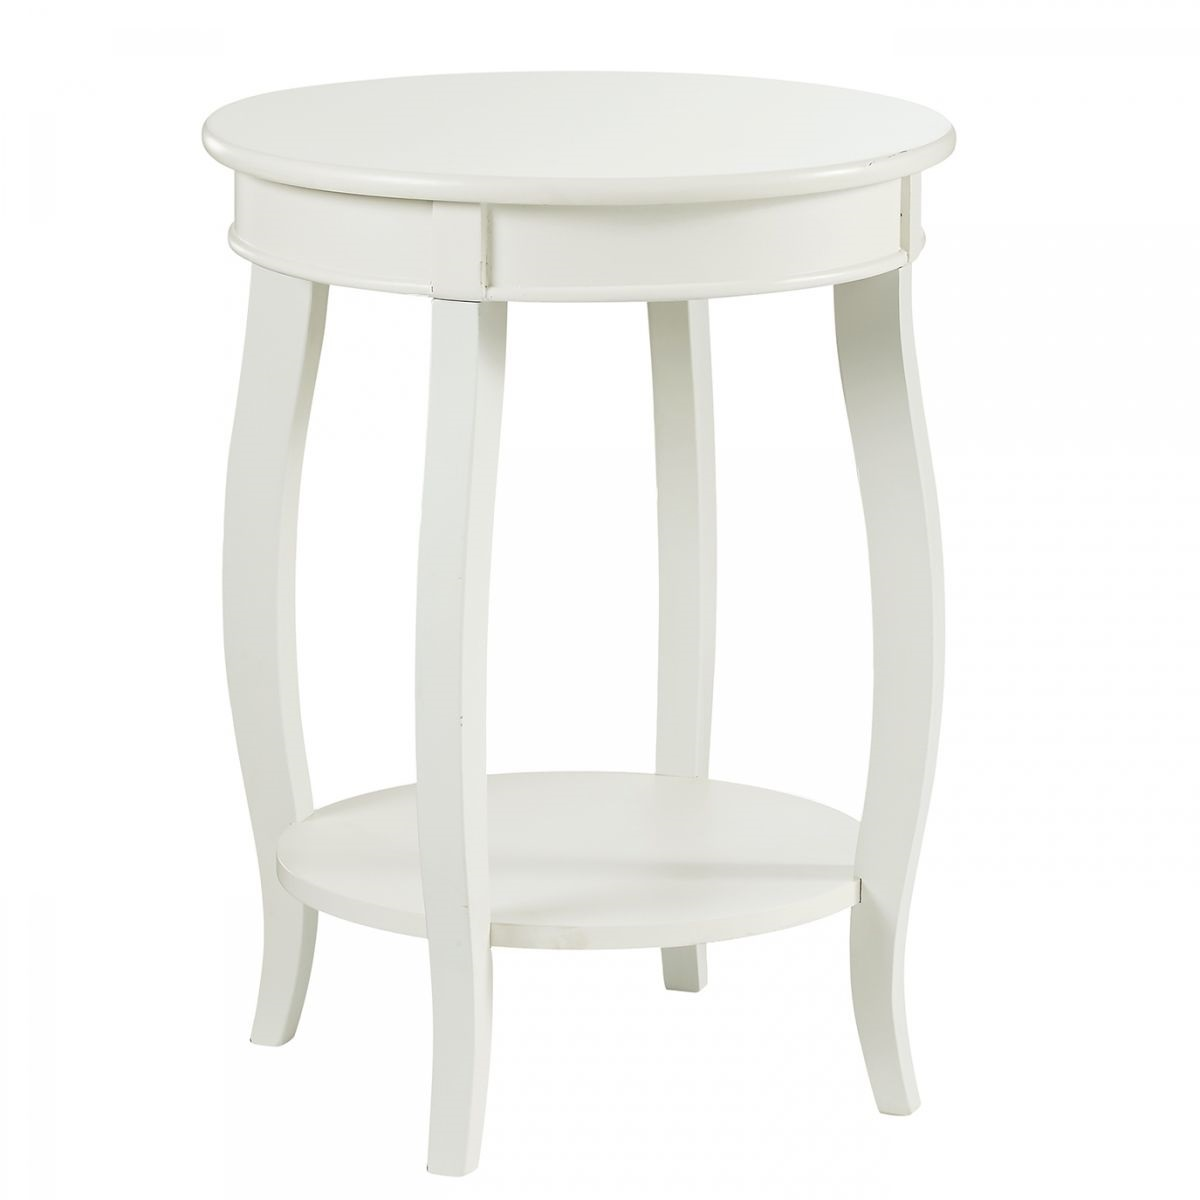 rainbow white round accent table badcock more wood ture wicker end tables gray farmhouse barn door bar glass top occasional computer desk furniture metal design small garden